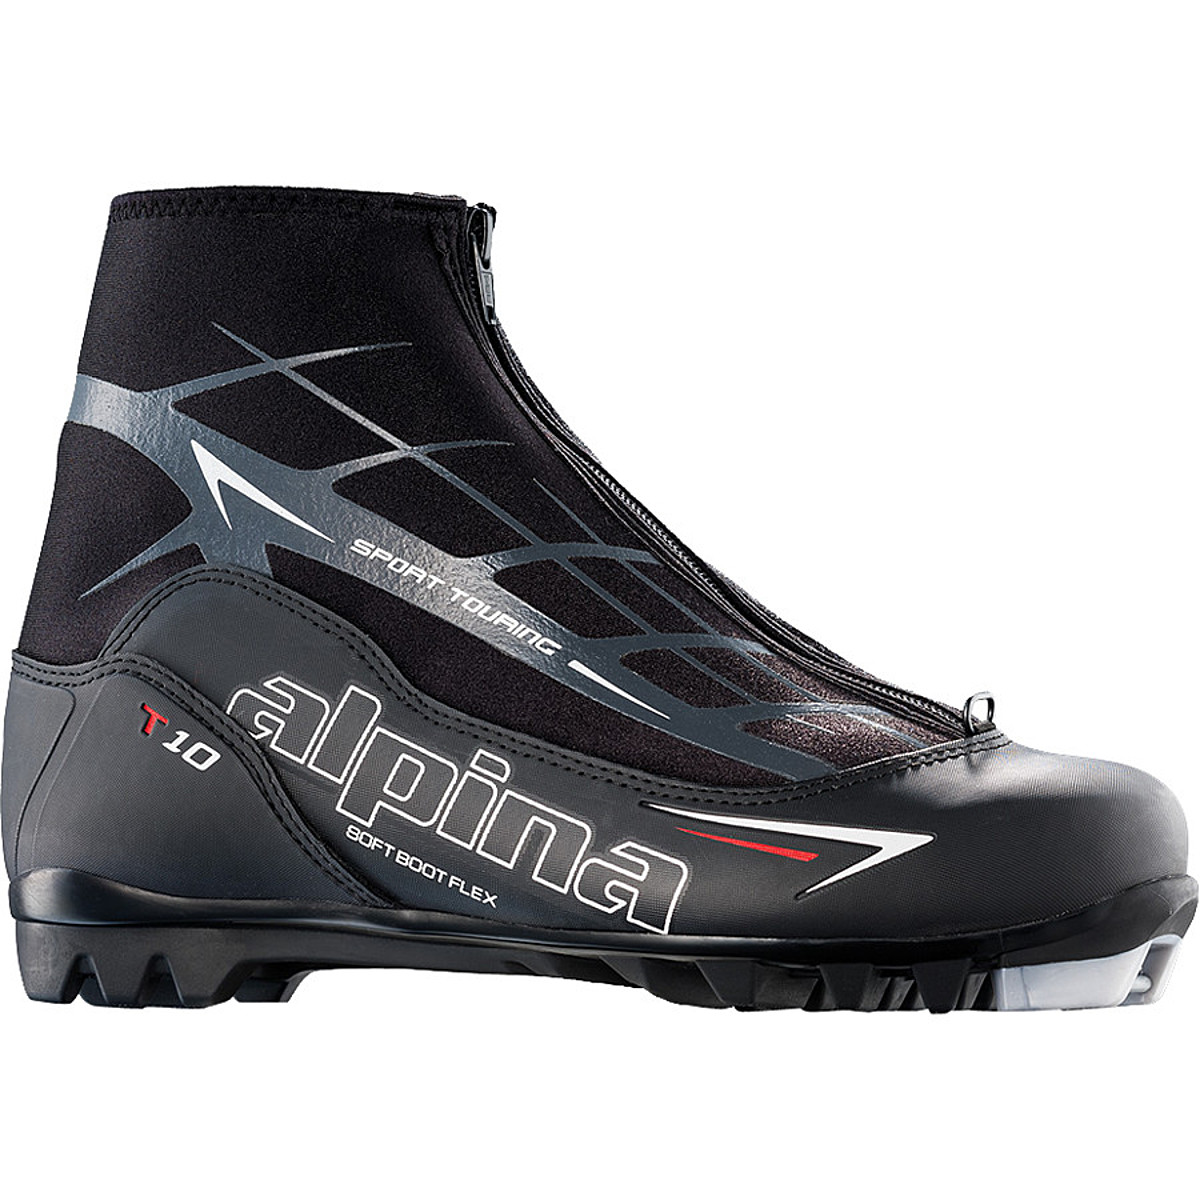 photo: Alpina Men's T10 nordic touring boot